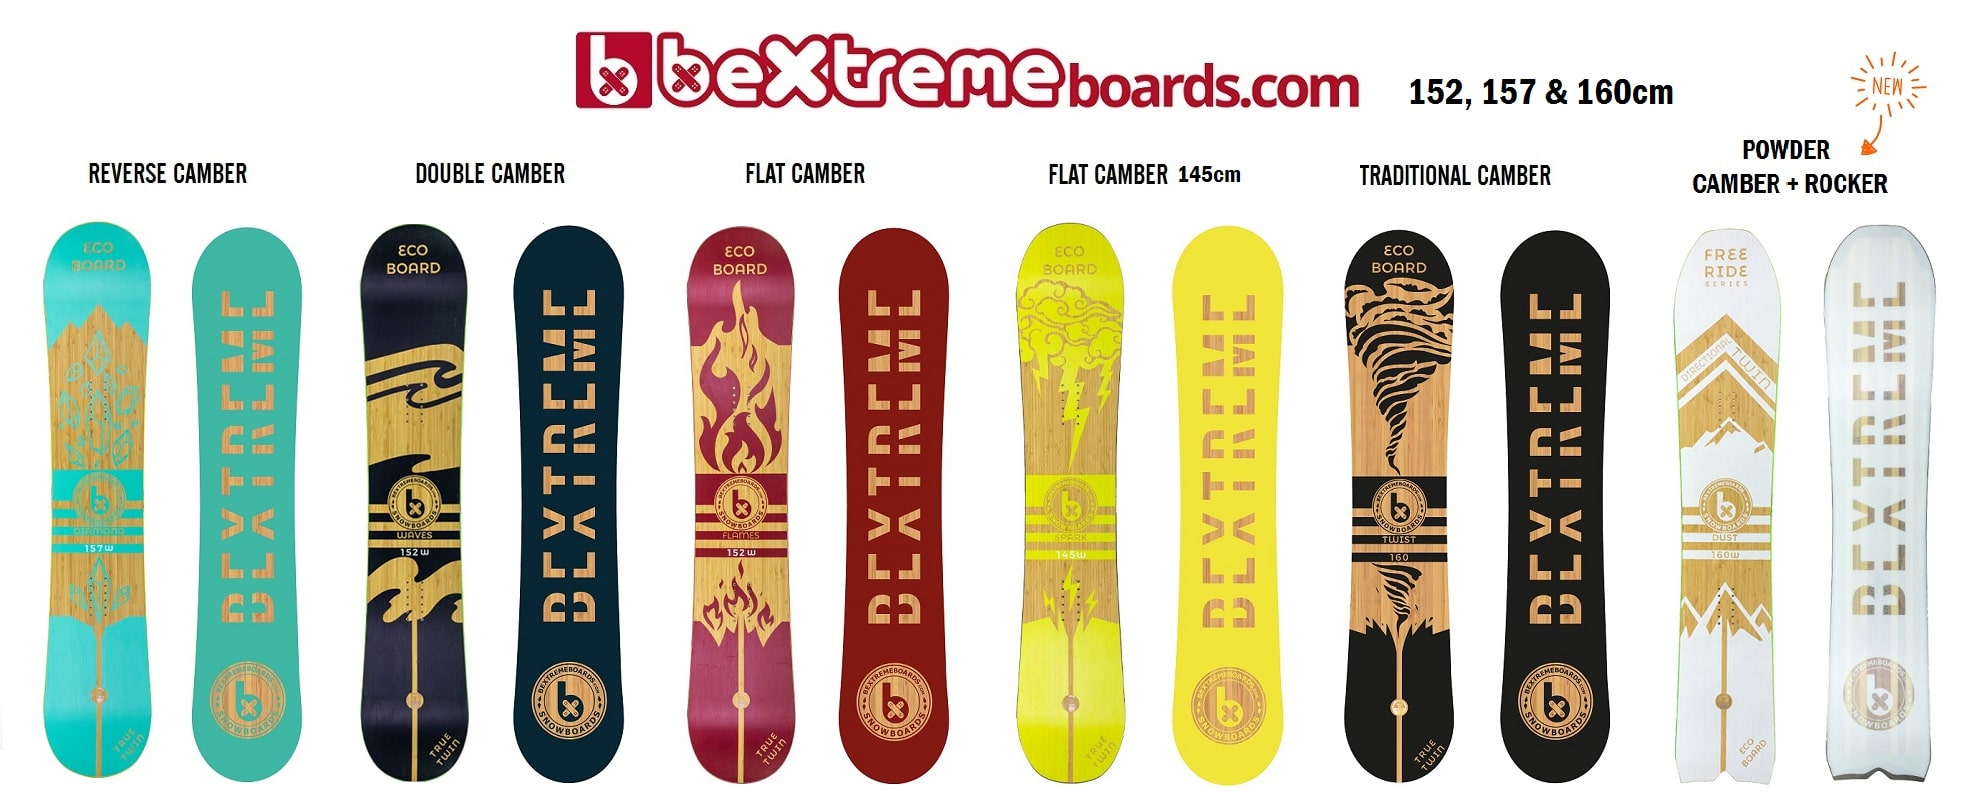 SNOWBOARDS BEXTREME 2019